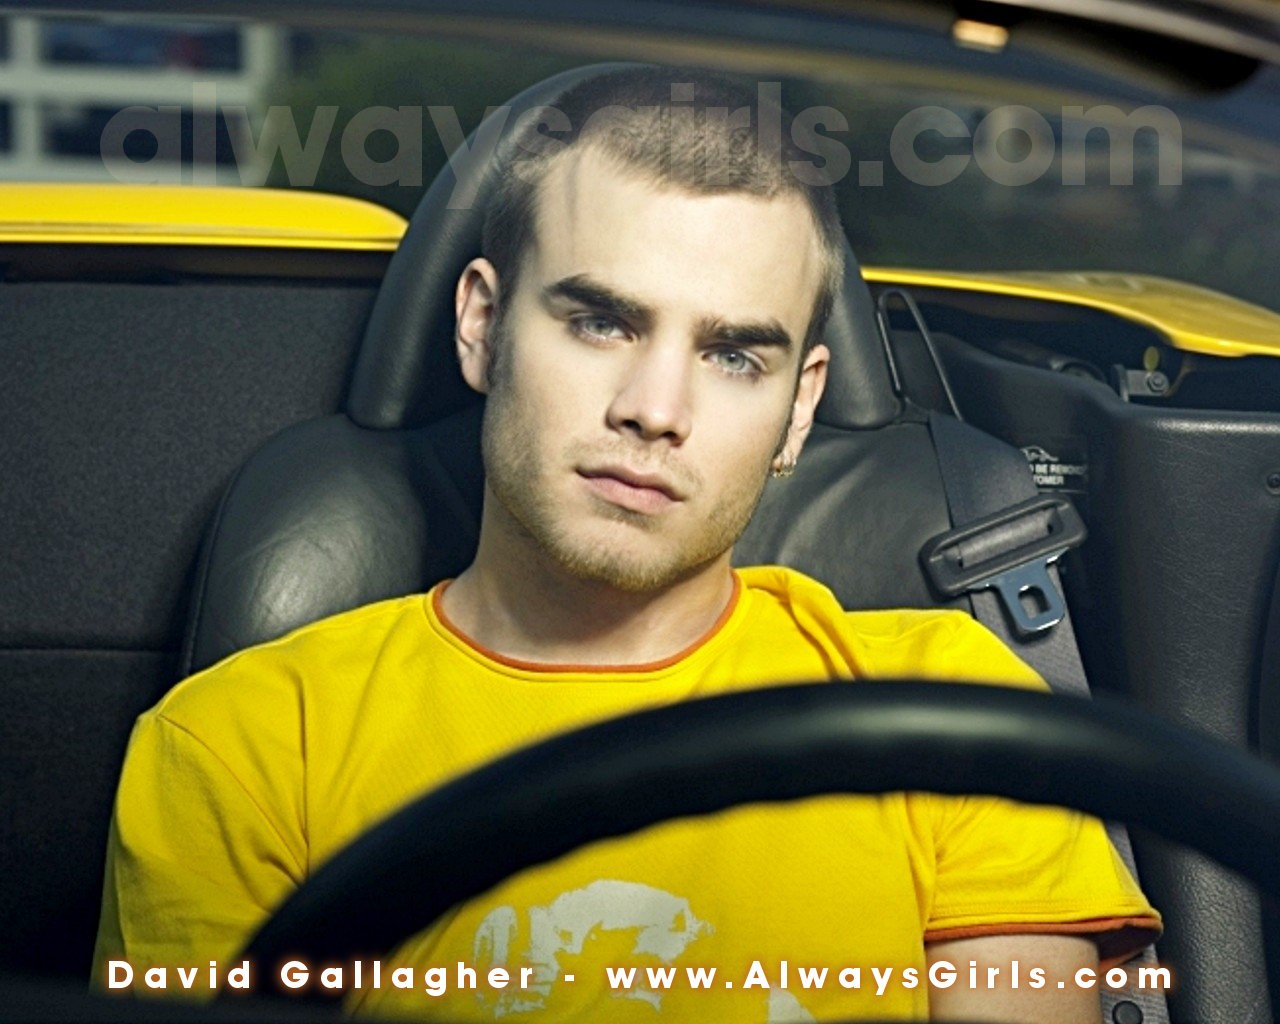 http://3.bp.blogspot.com/-v5i9w5S58BQ/TzKZOwVrHRI/AAAAAAAABBM/P5Ht7lZOsCo/s1600/david-gallagher-background-3-791320.jpg